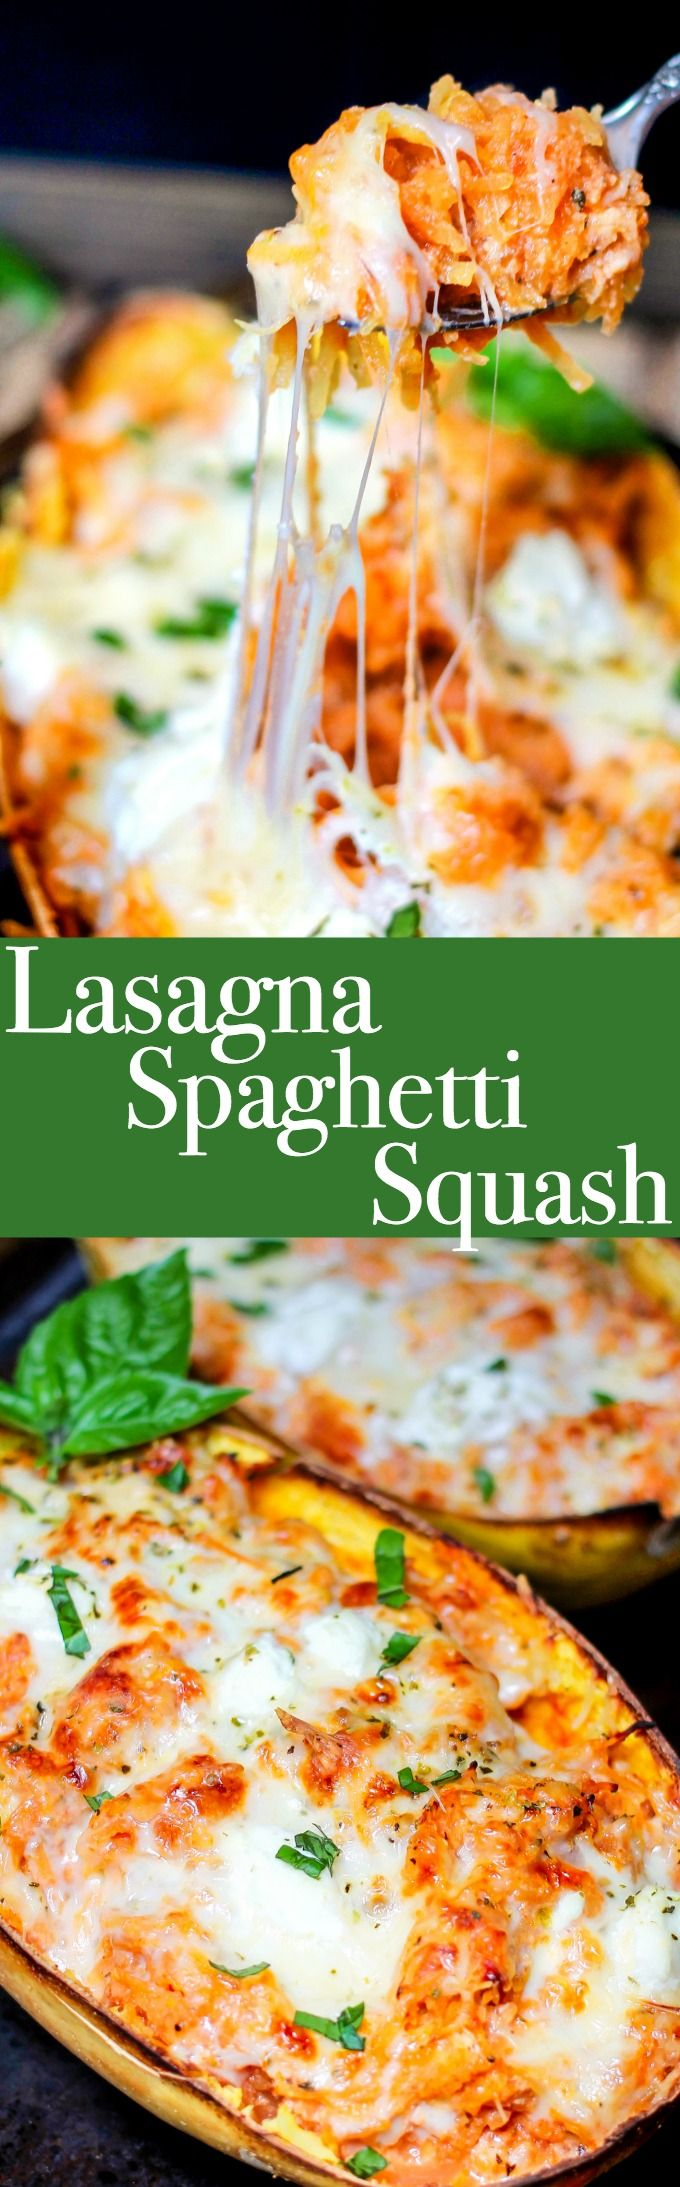 Spaghetti Squash Lasagna cuts the carbs but not the flavor! It's stuffed with your favorite traditional lasagna ingredients, and makes the perfect healthy dinner! #ad #herbalife